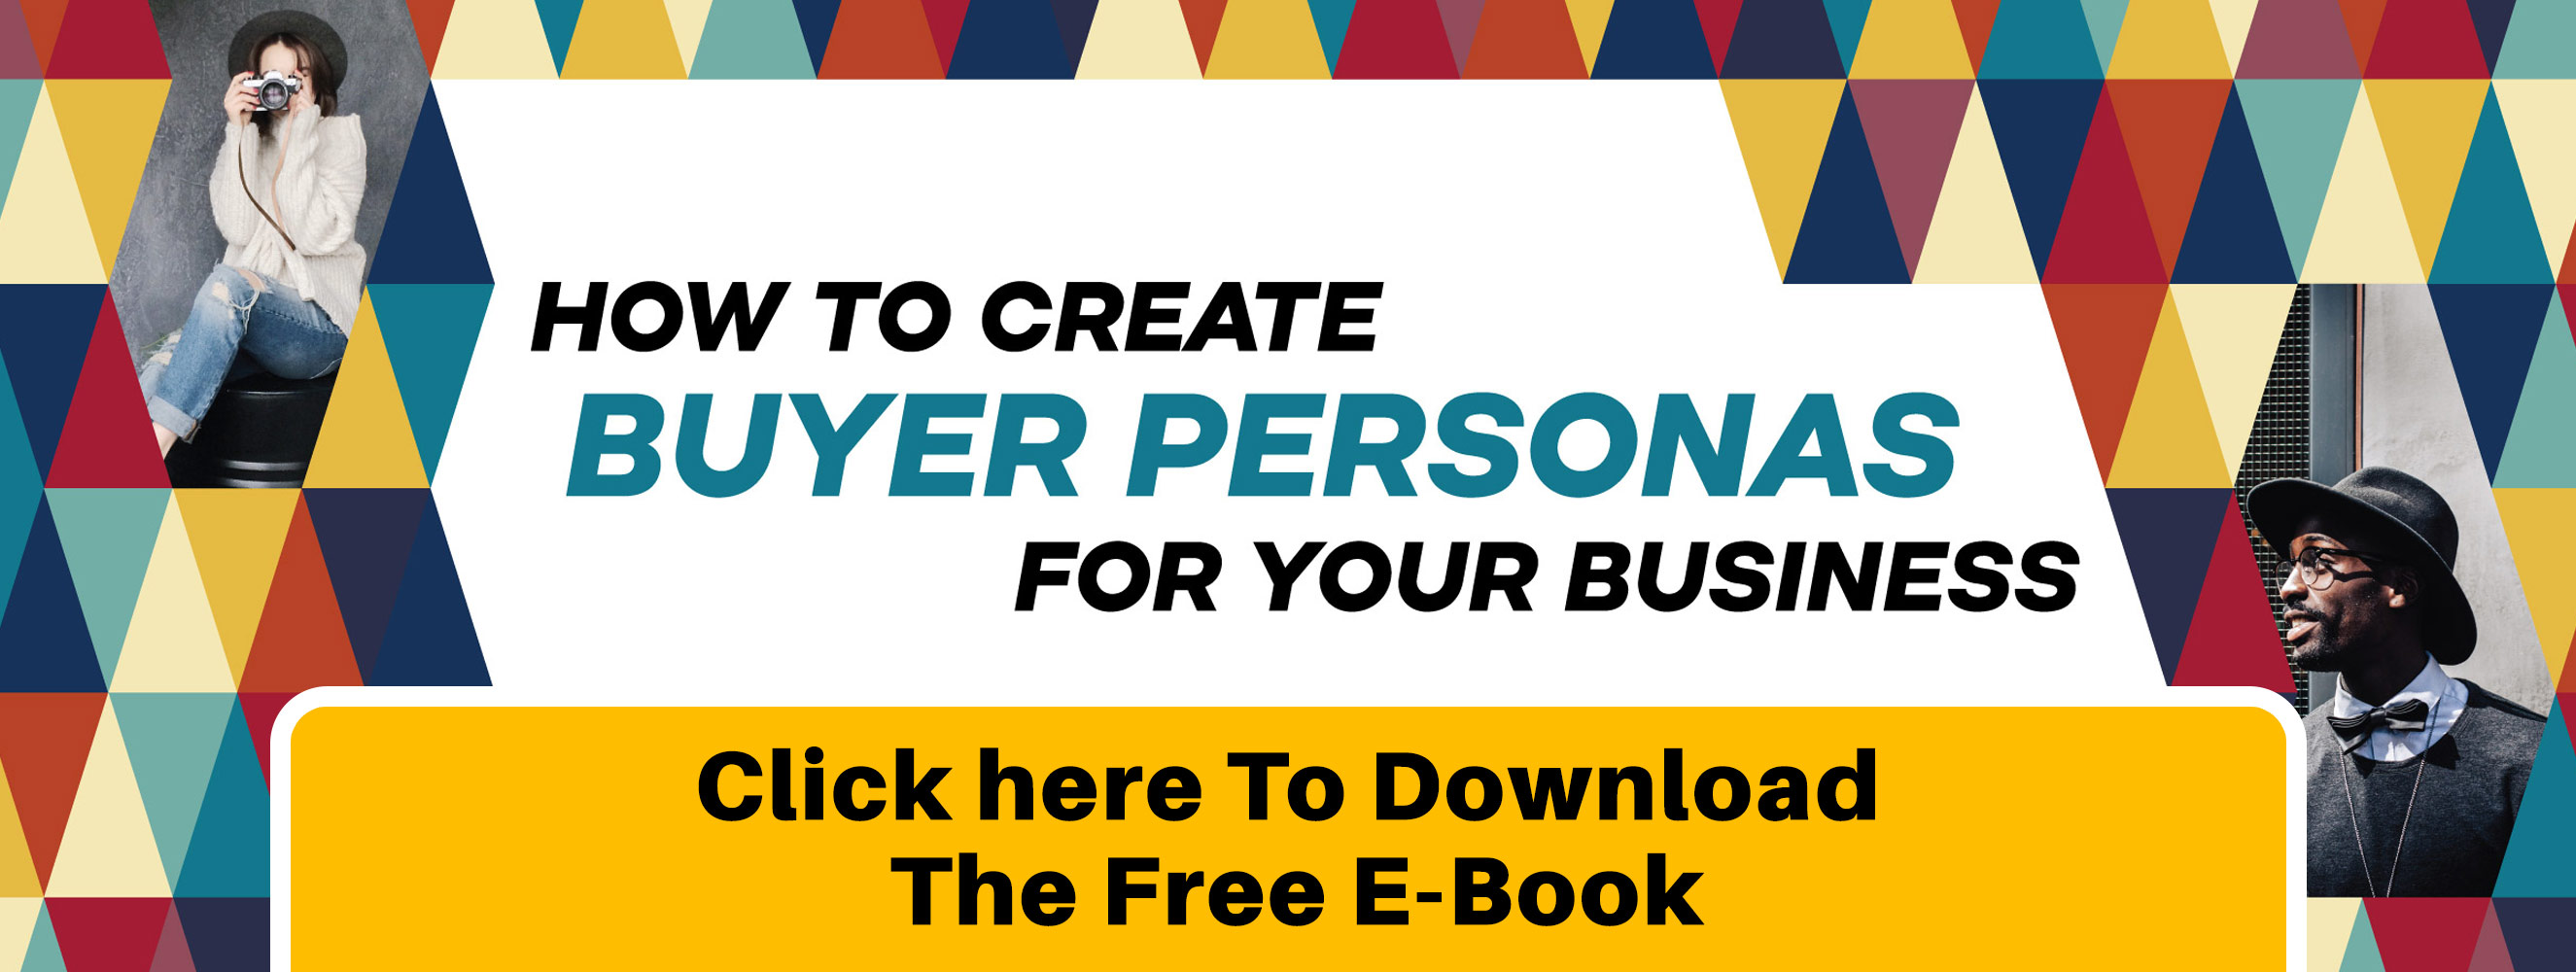 cta resource page buyers persona